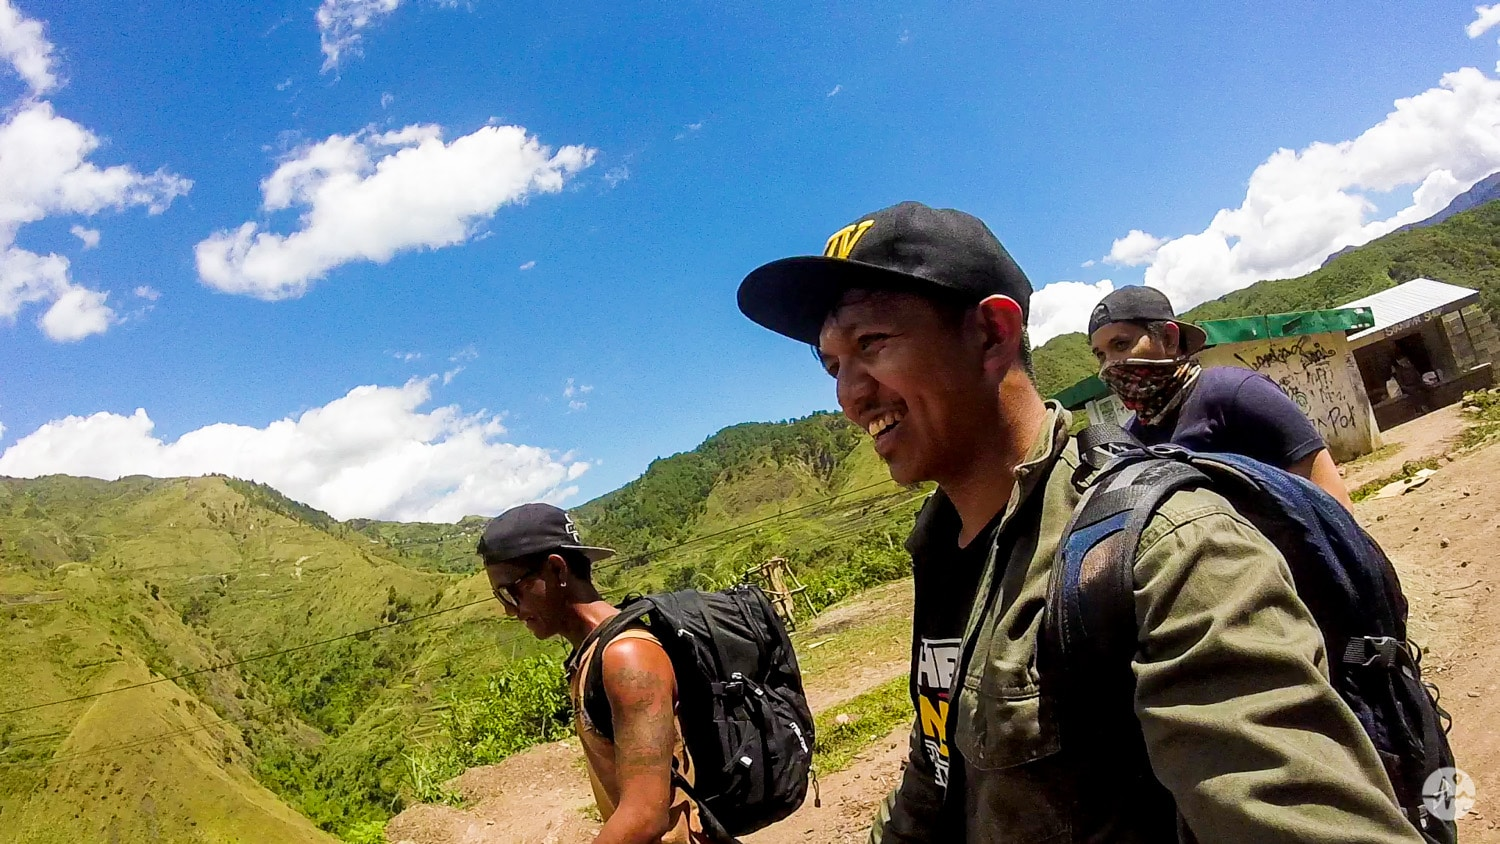 Hiking from turning point going to Buscalan Village